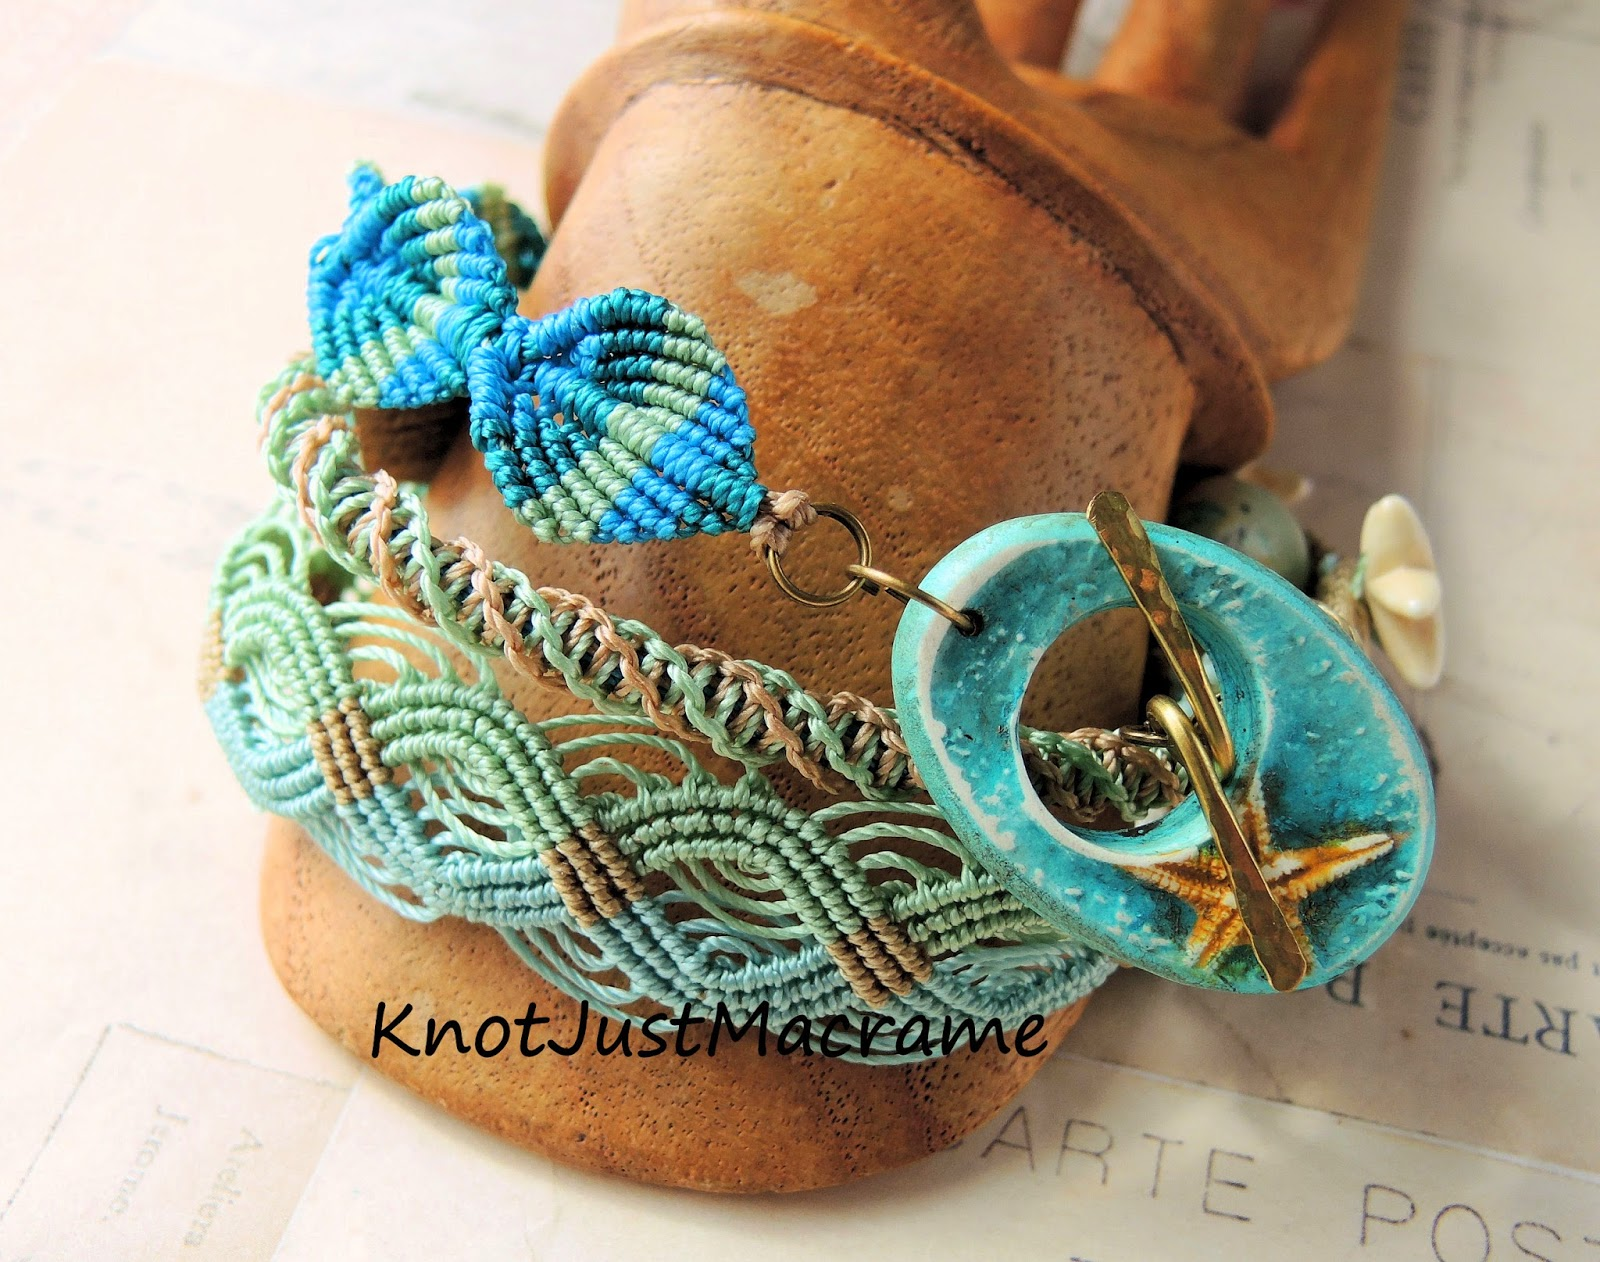 Starfish beach themed knotted micro macrame wrap bracelet by Knot Just Macrame.